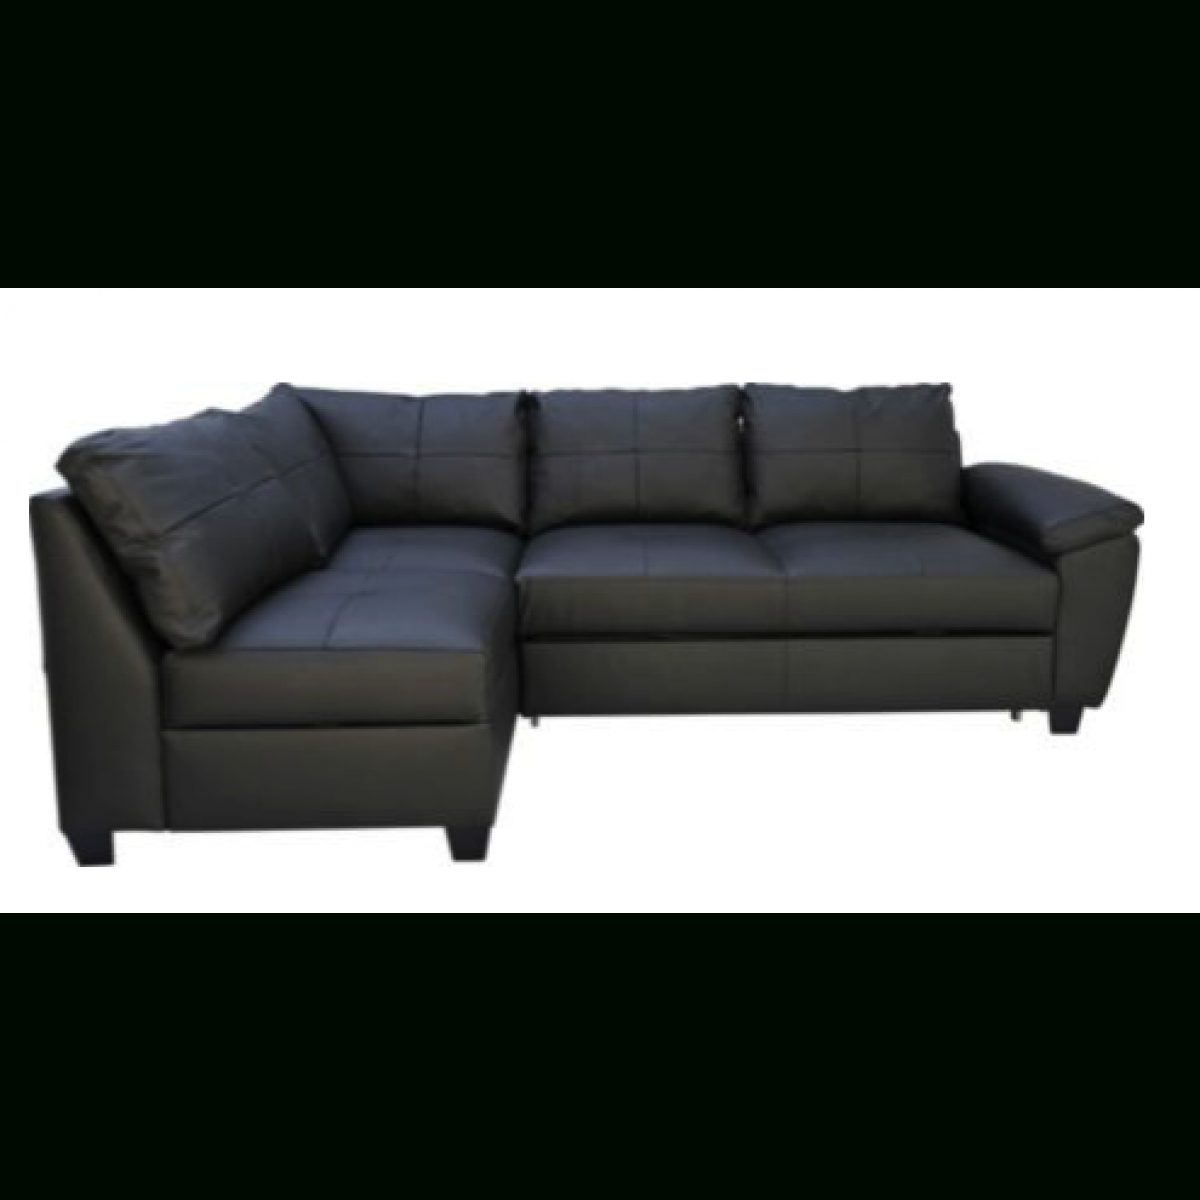 Fernando Leather Left Hand Sofa Bed Corner Group - Black intended for Leather Corner Sofa Bed (Image 12 of 30)